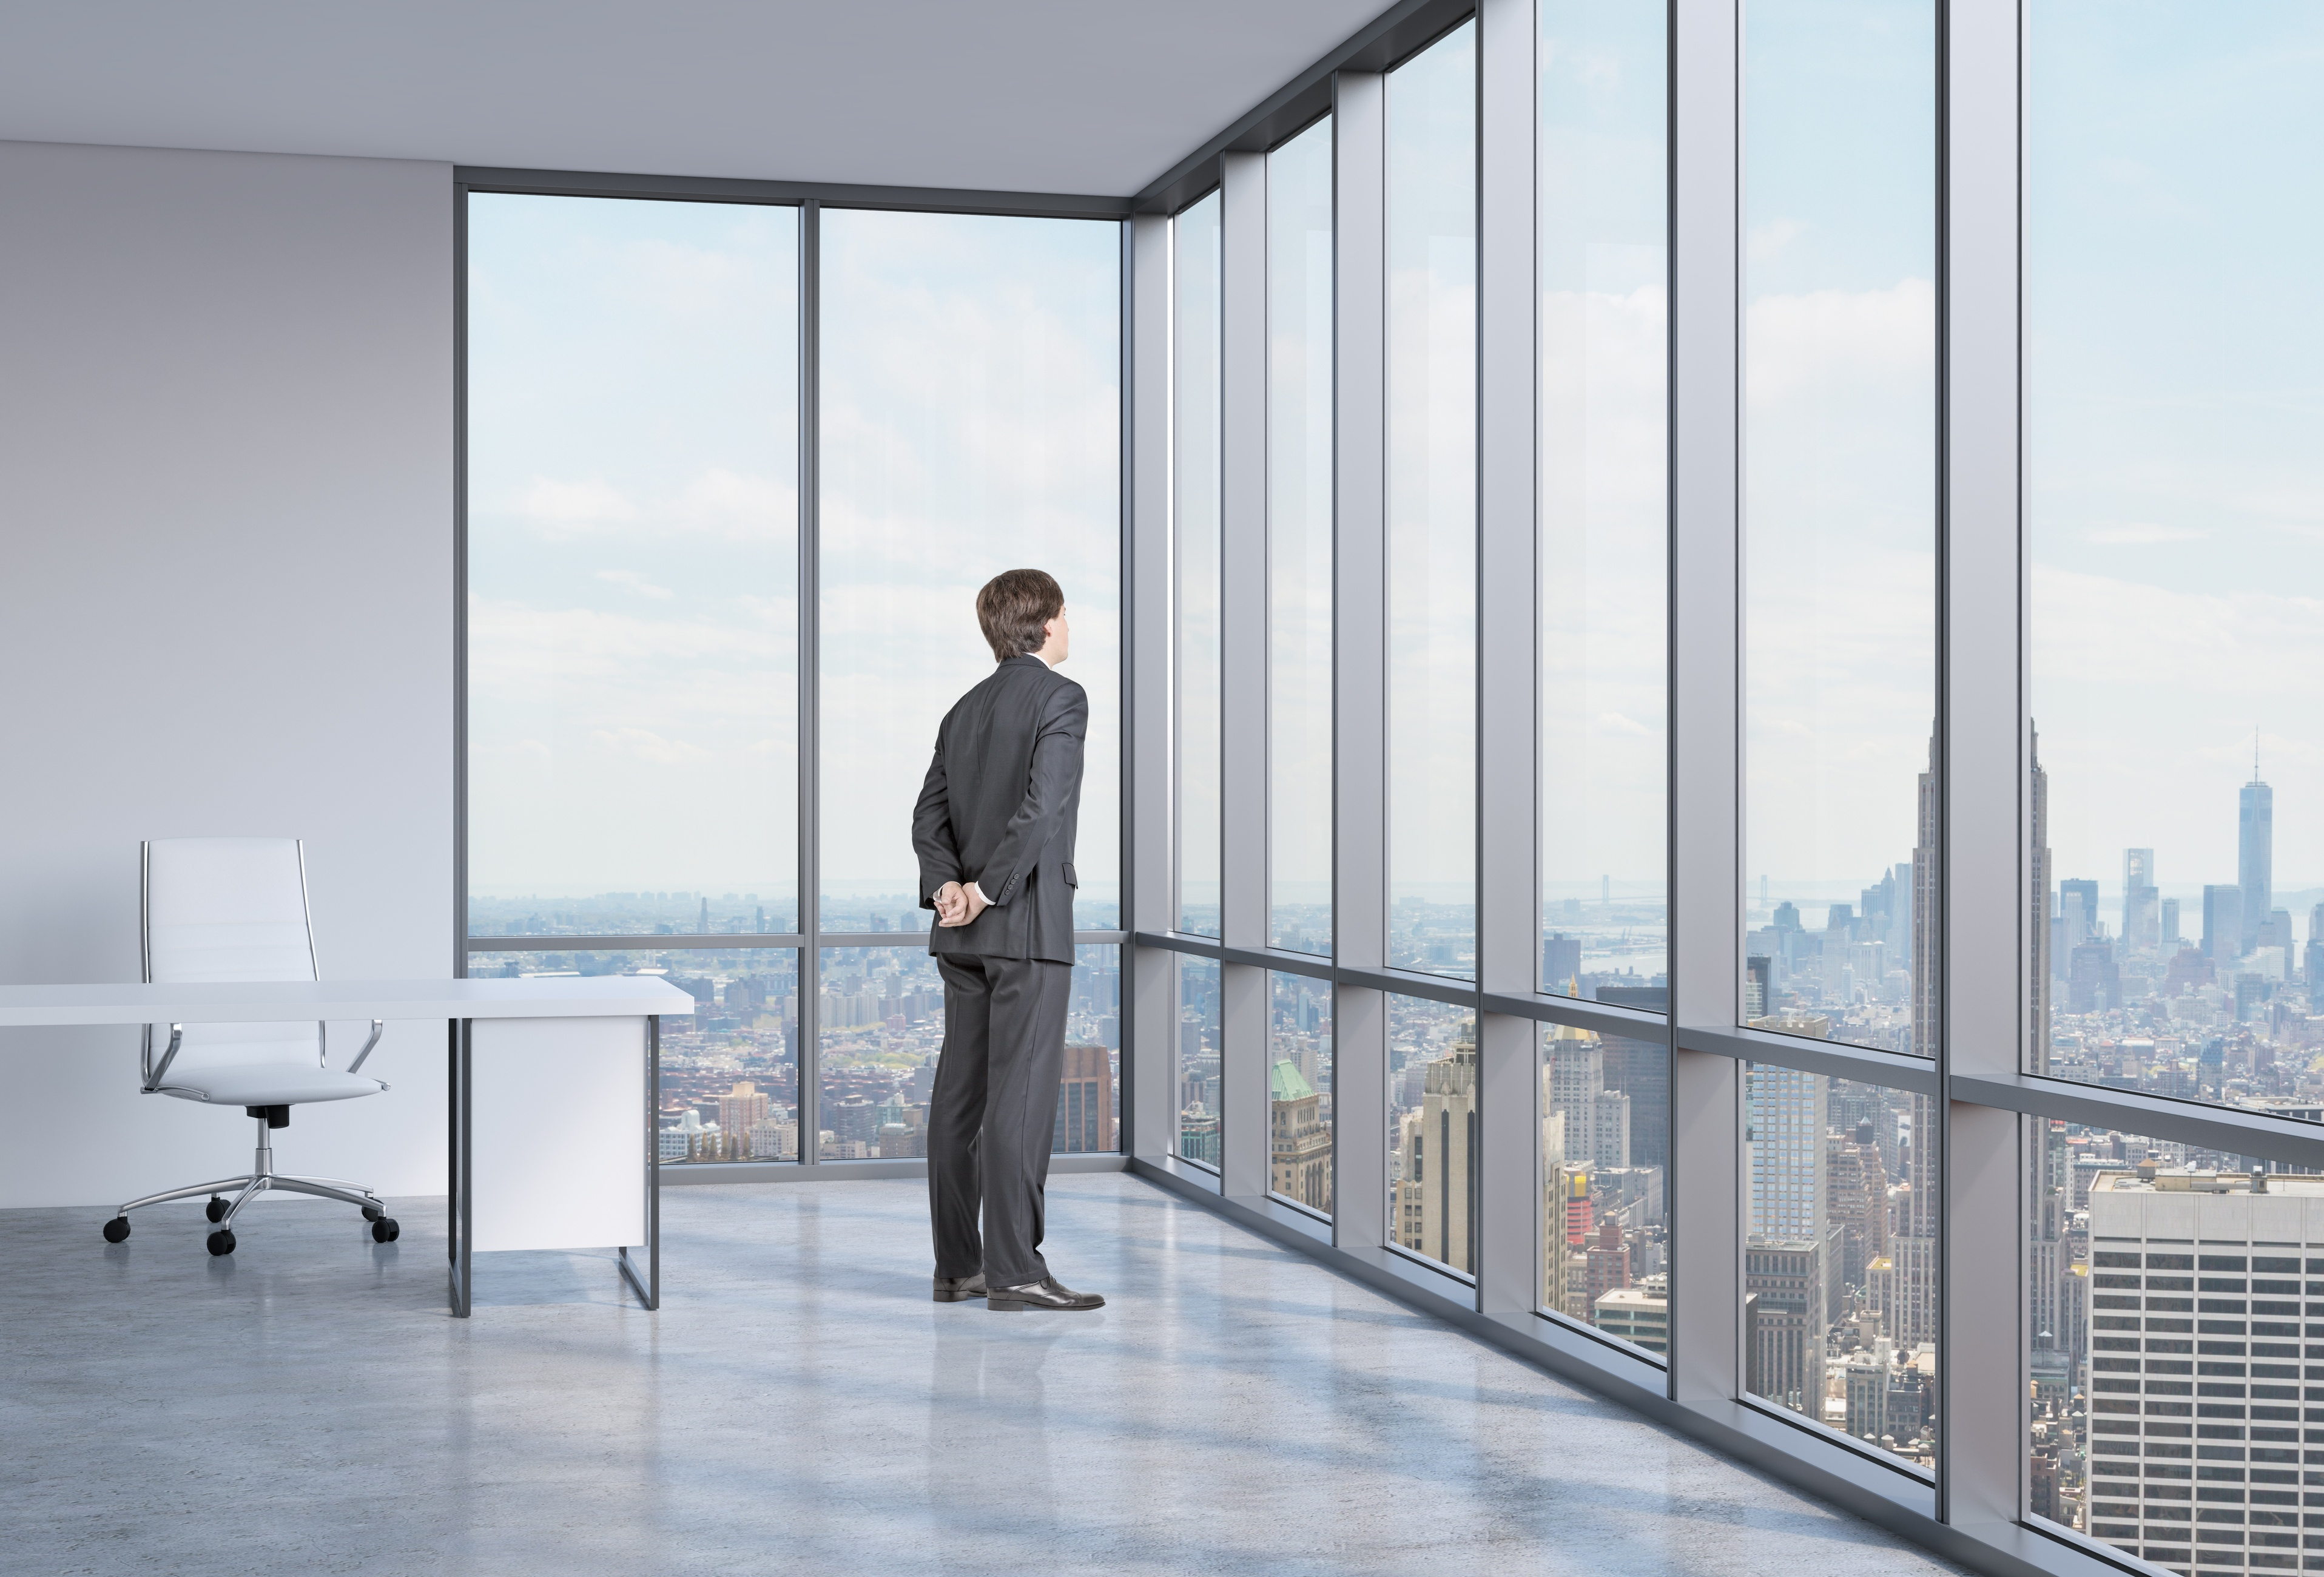 Midsize Enterprise CIOs Need to Become Chief Digital Officers